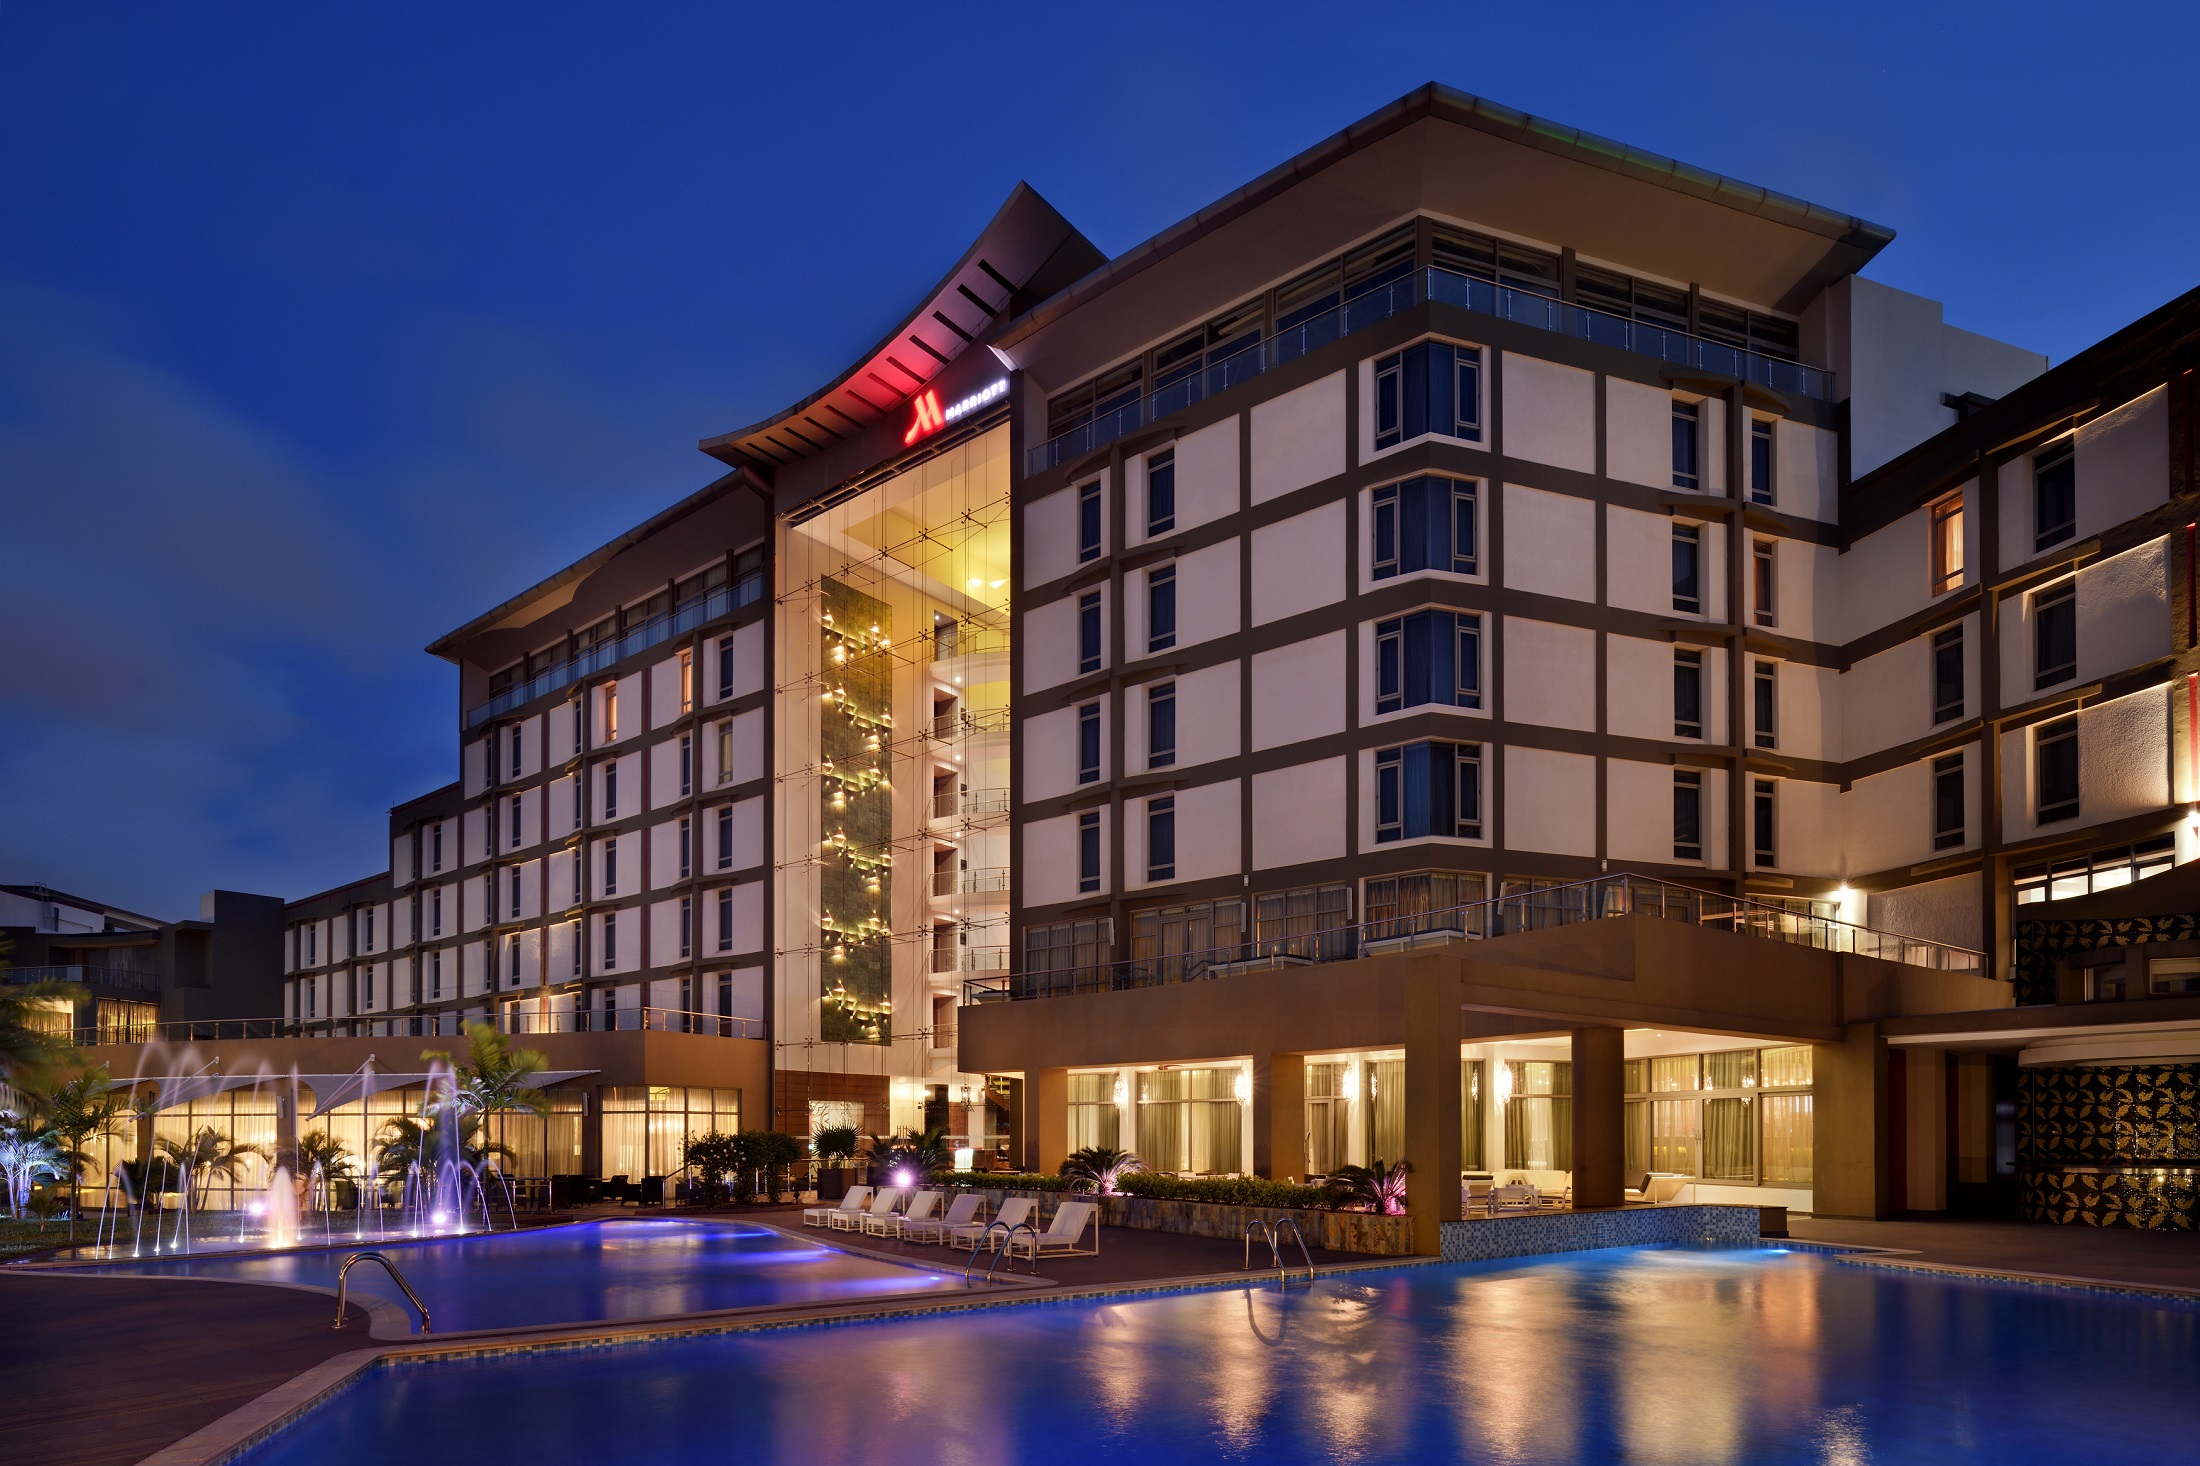 Marriott Hotels Debut In West Africa With The Opening Of Accra Hotel Ghana Pictures